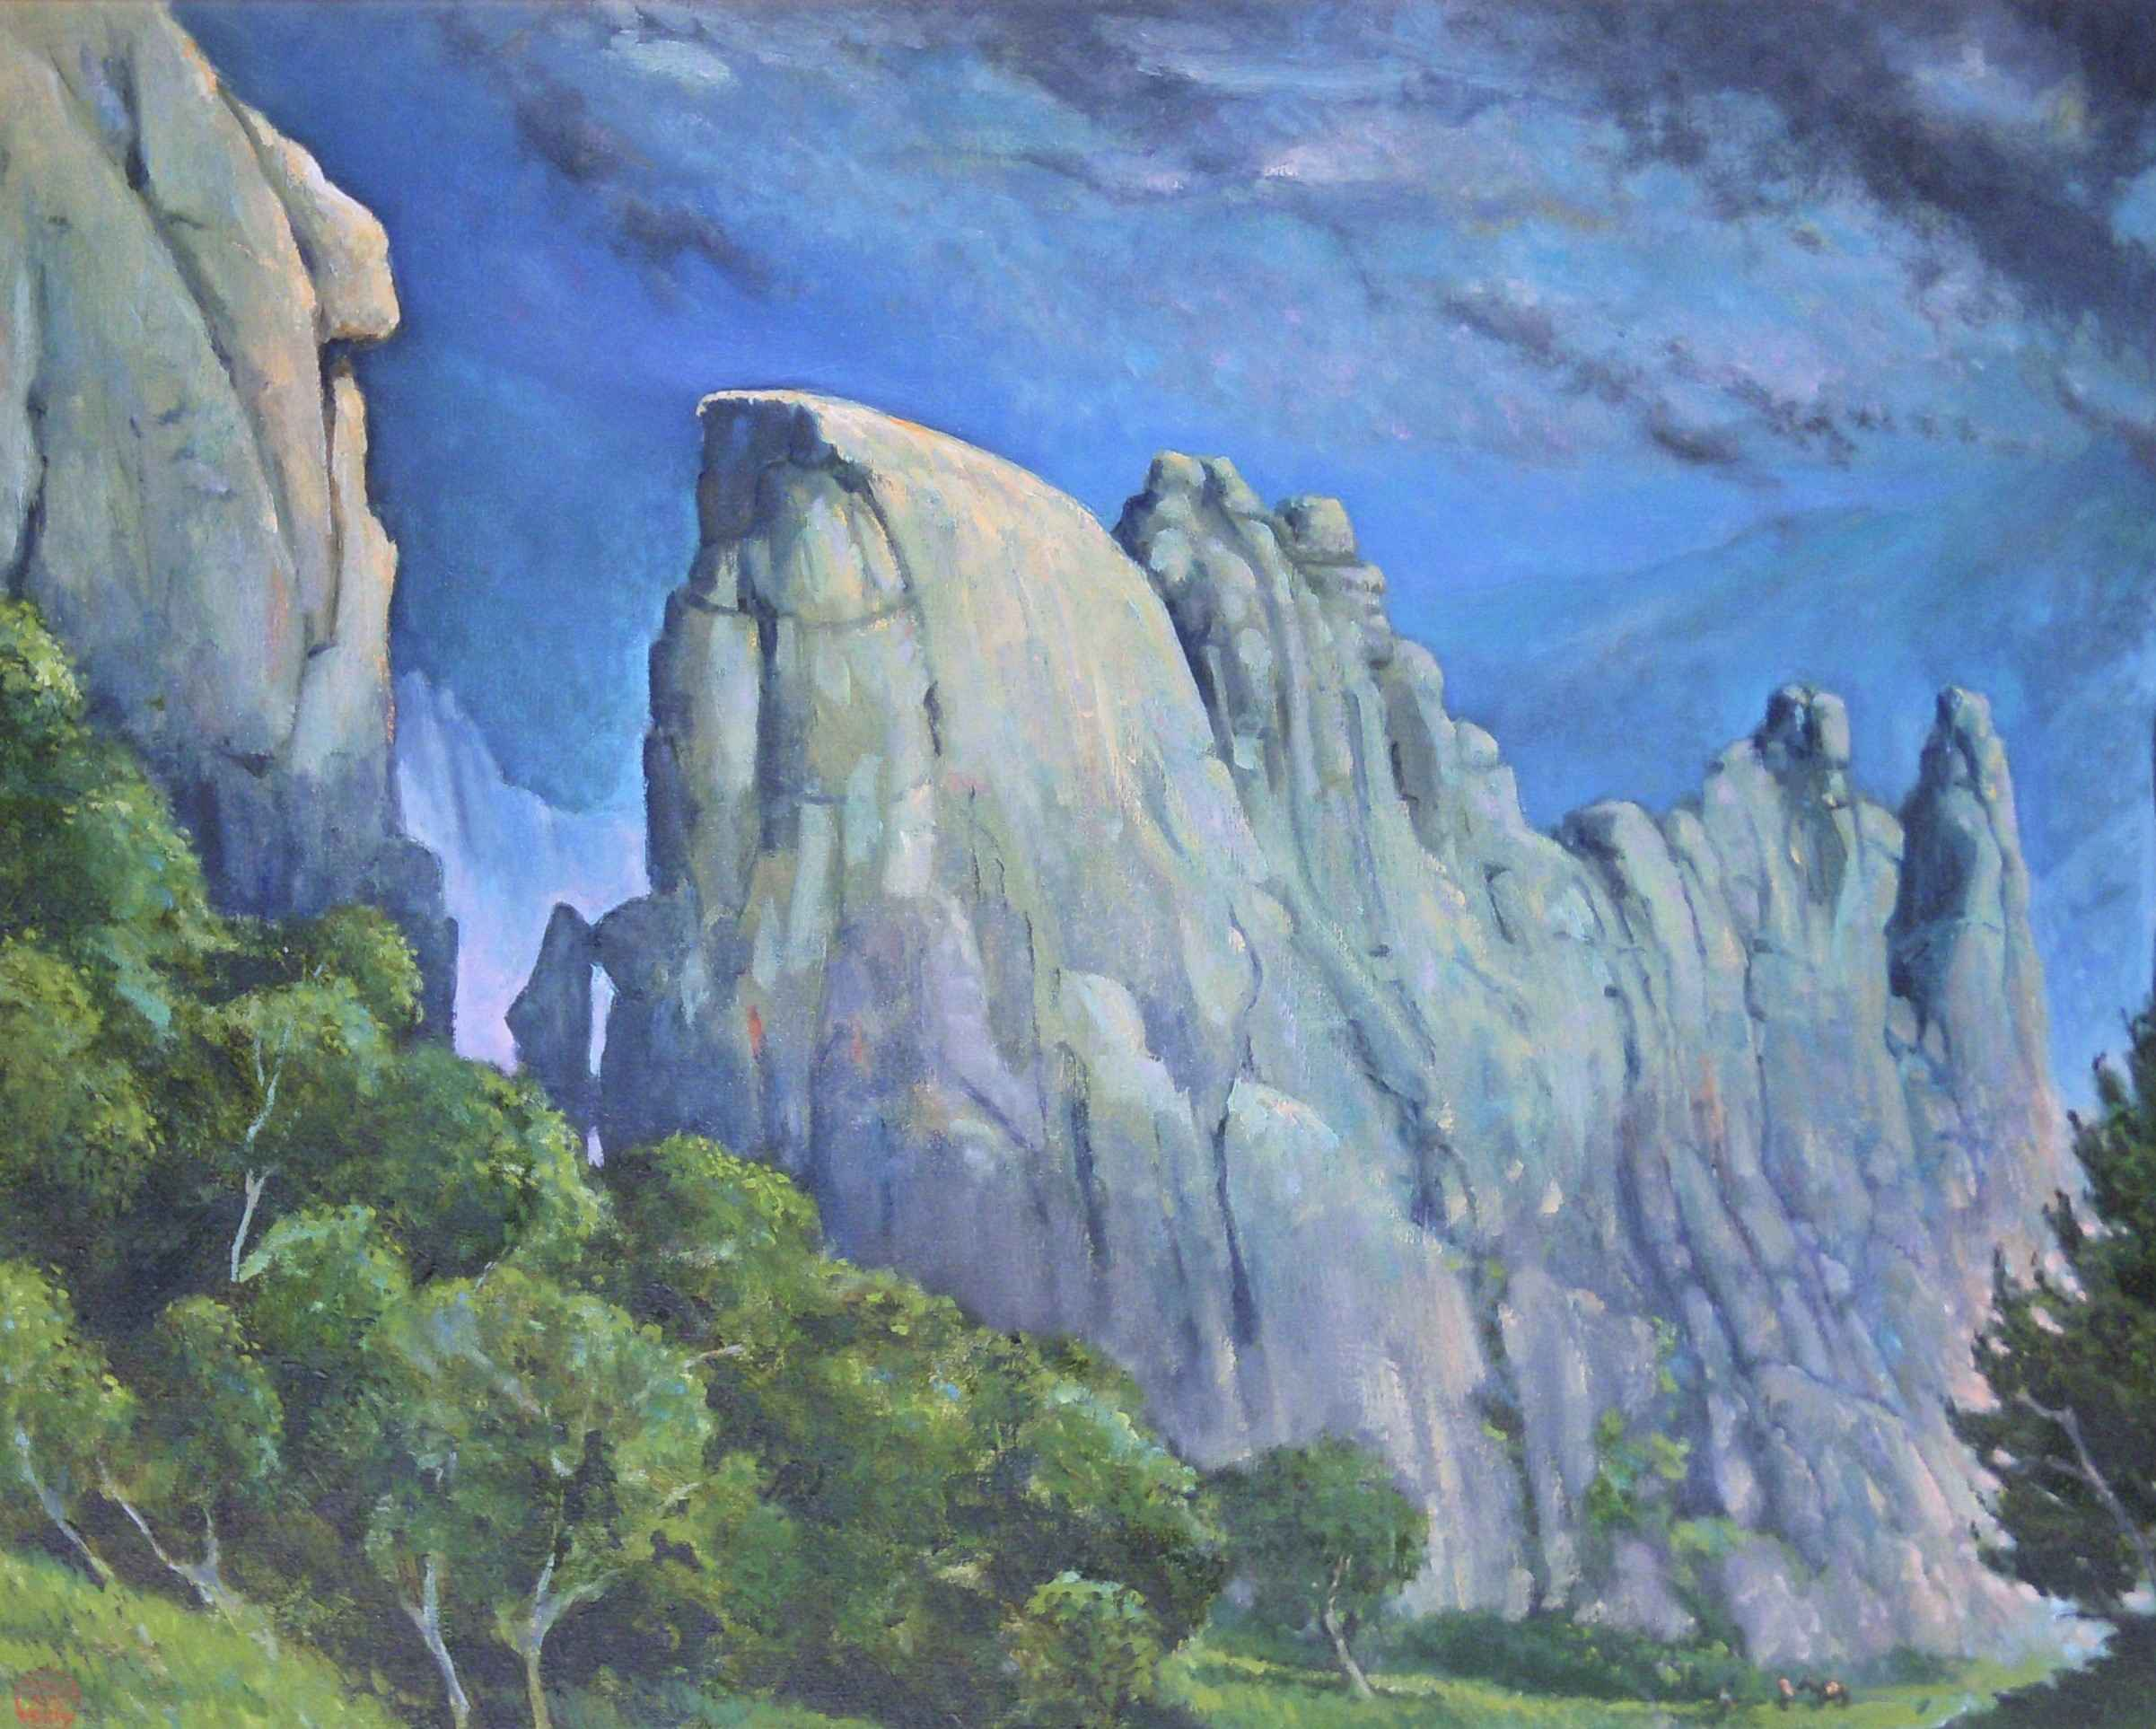 Unknown (Mountains) by  Leland John - Masterpiece Online